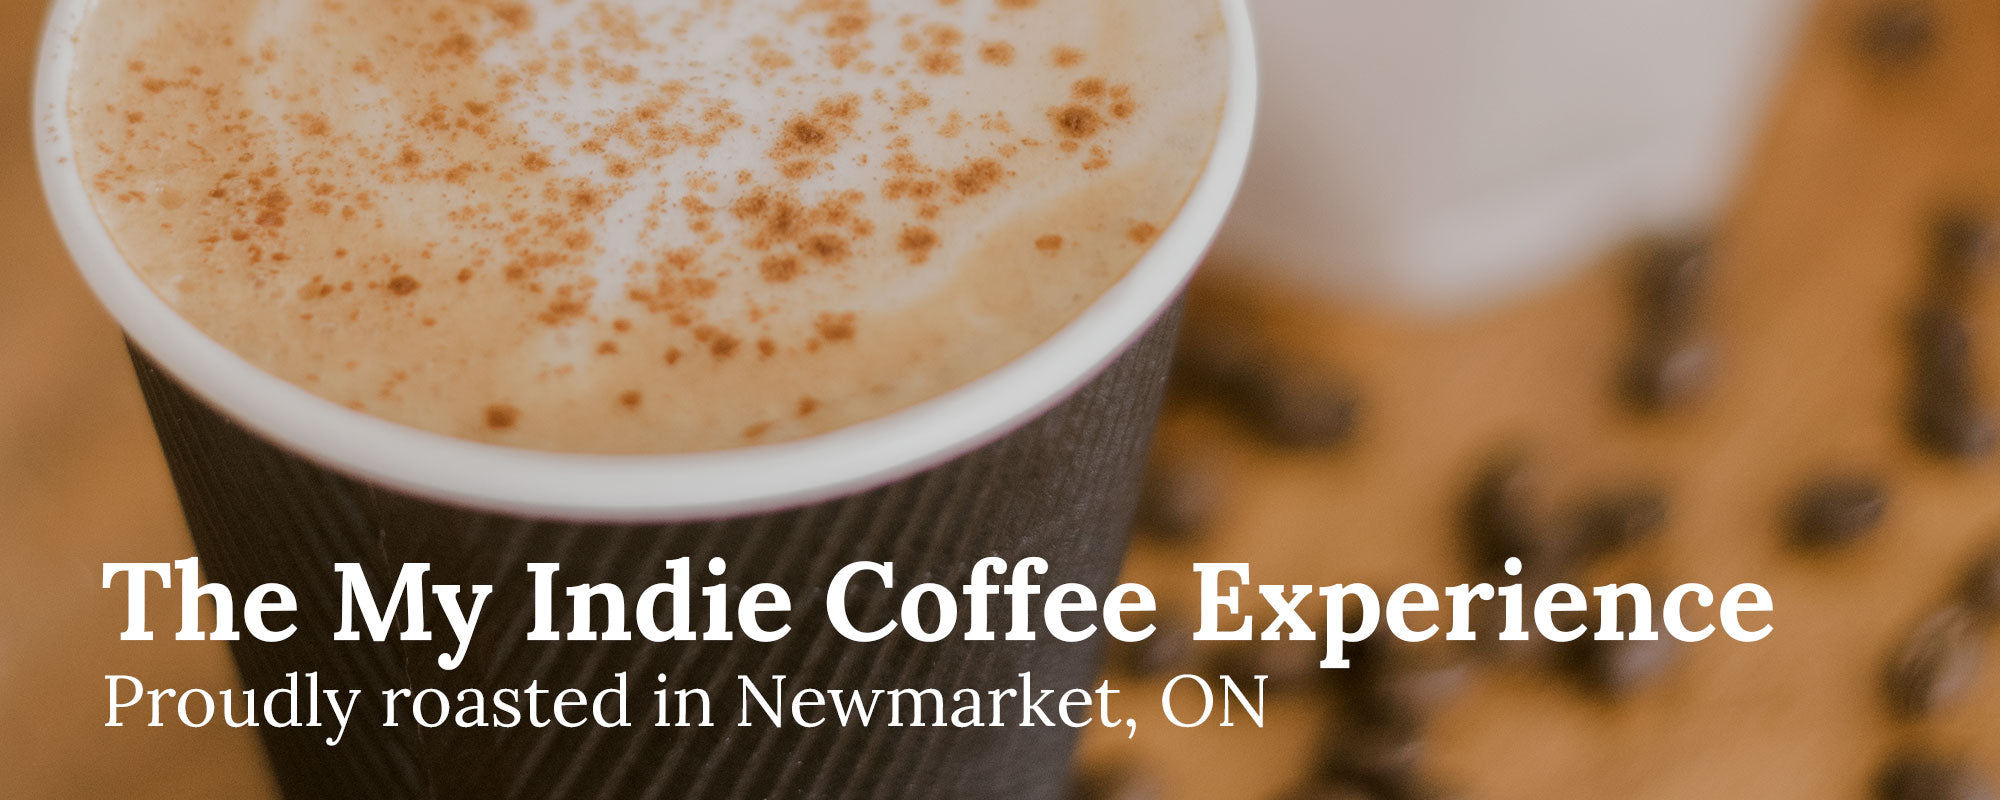 My Indie Coffee - Proudly Roasted in Newmarket, ON